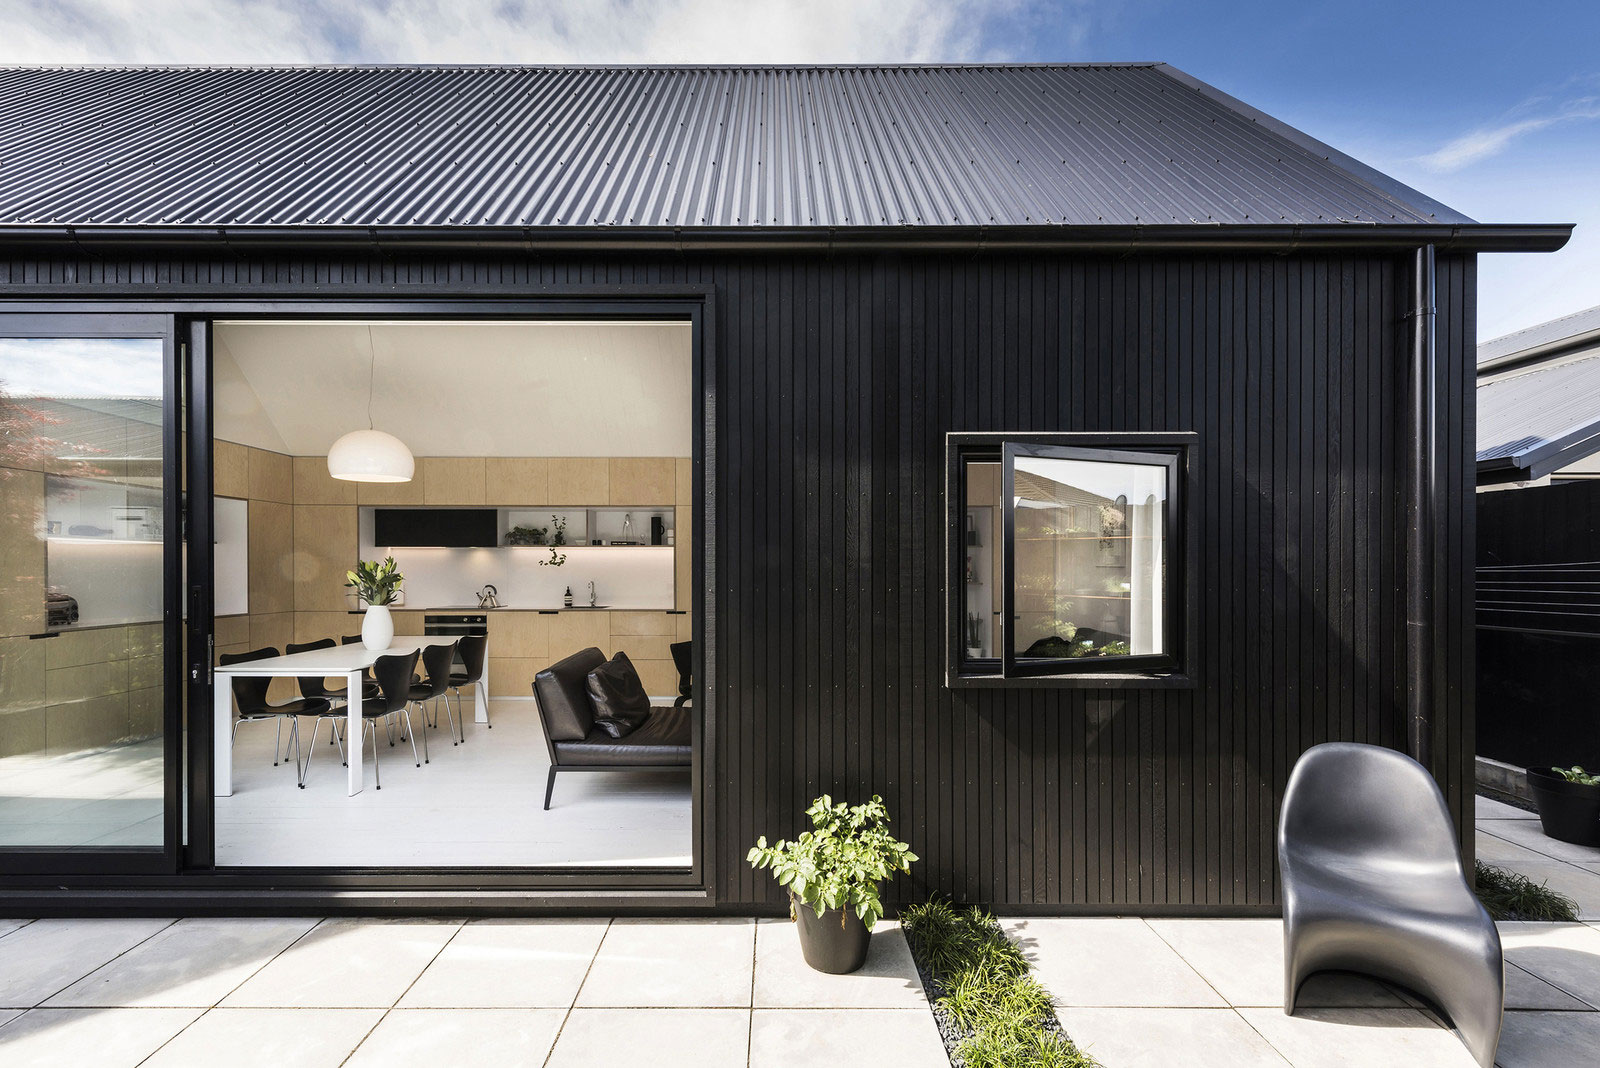 Small house in new zealand designed by colab arquitectura for Design house architecture nz